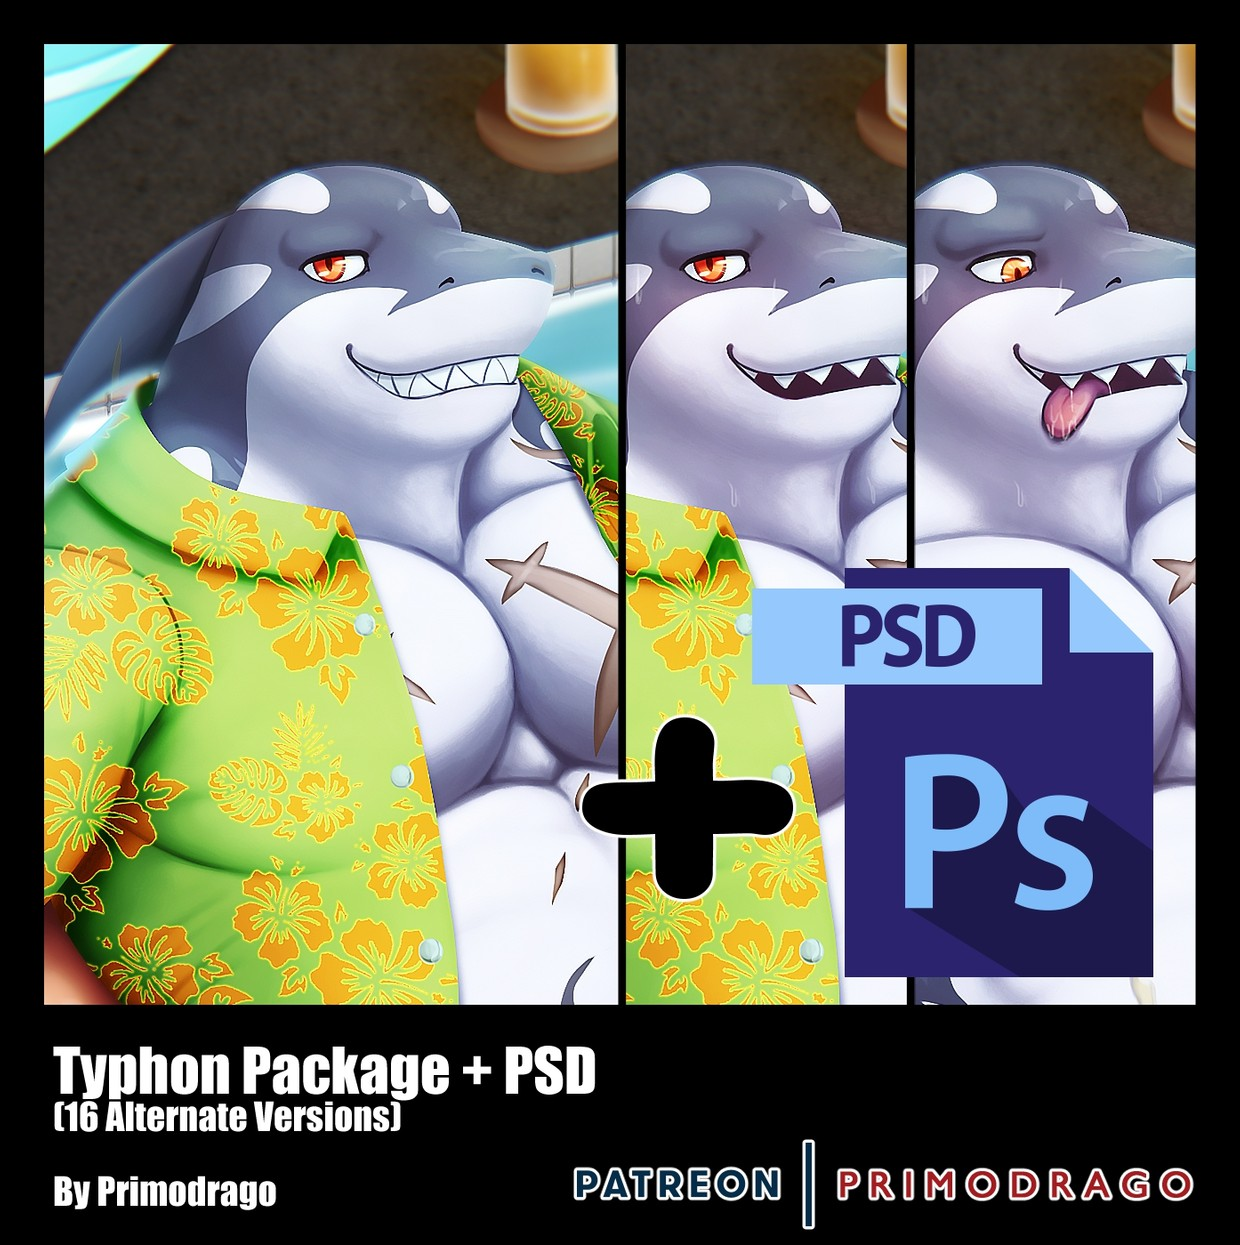 Typhon Artpack + PSD File